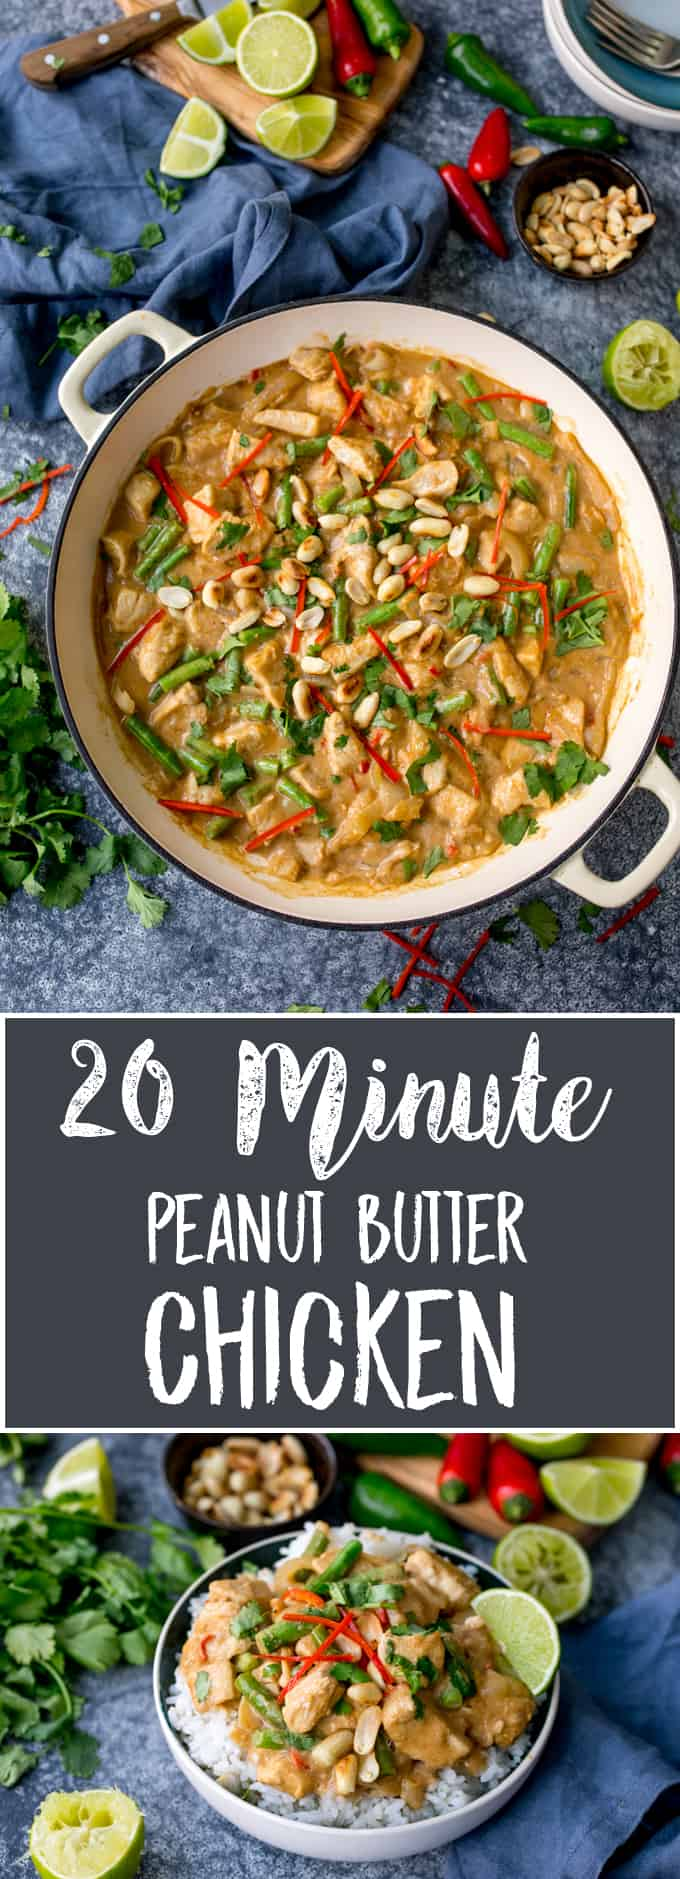 My Peanut Butter Chicken is packed full of flavour and ready in 20 minutes! A great mid-week meal, with no fussy ingredients! #peanutbutterchicken #peanutchicken #thaichicken #peanutbutter #quickdinner #glutenfreedinner